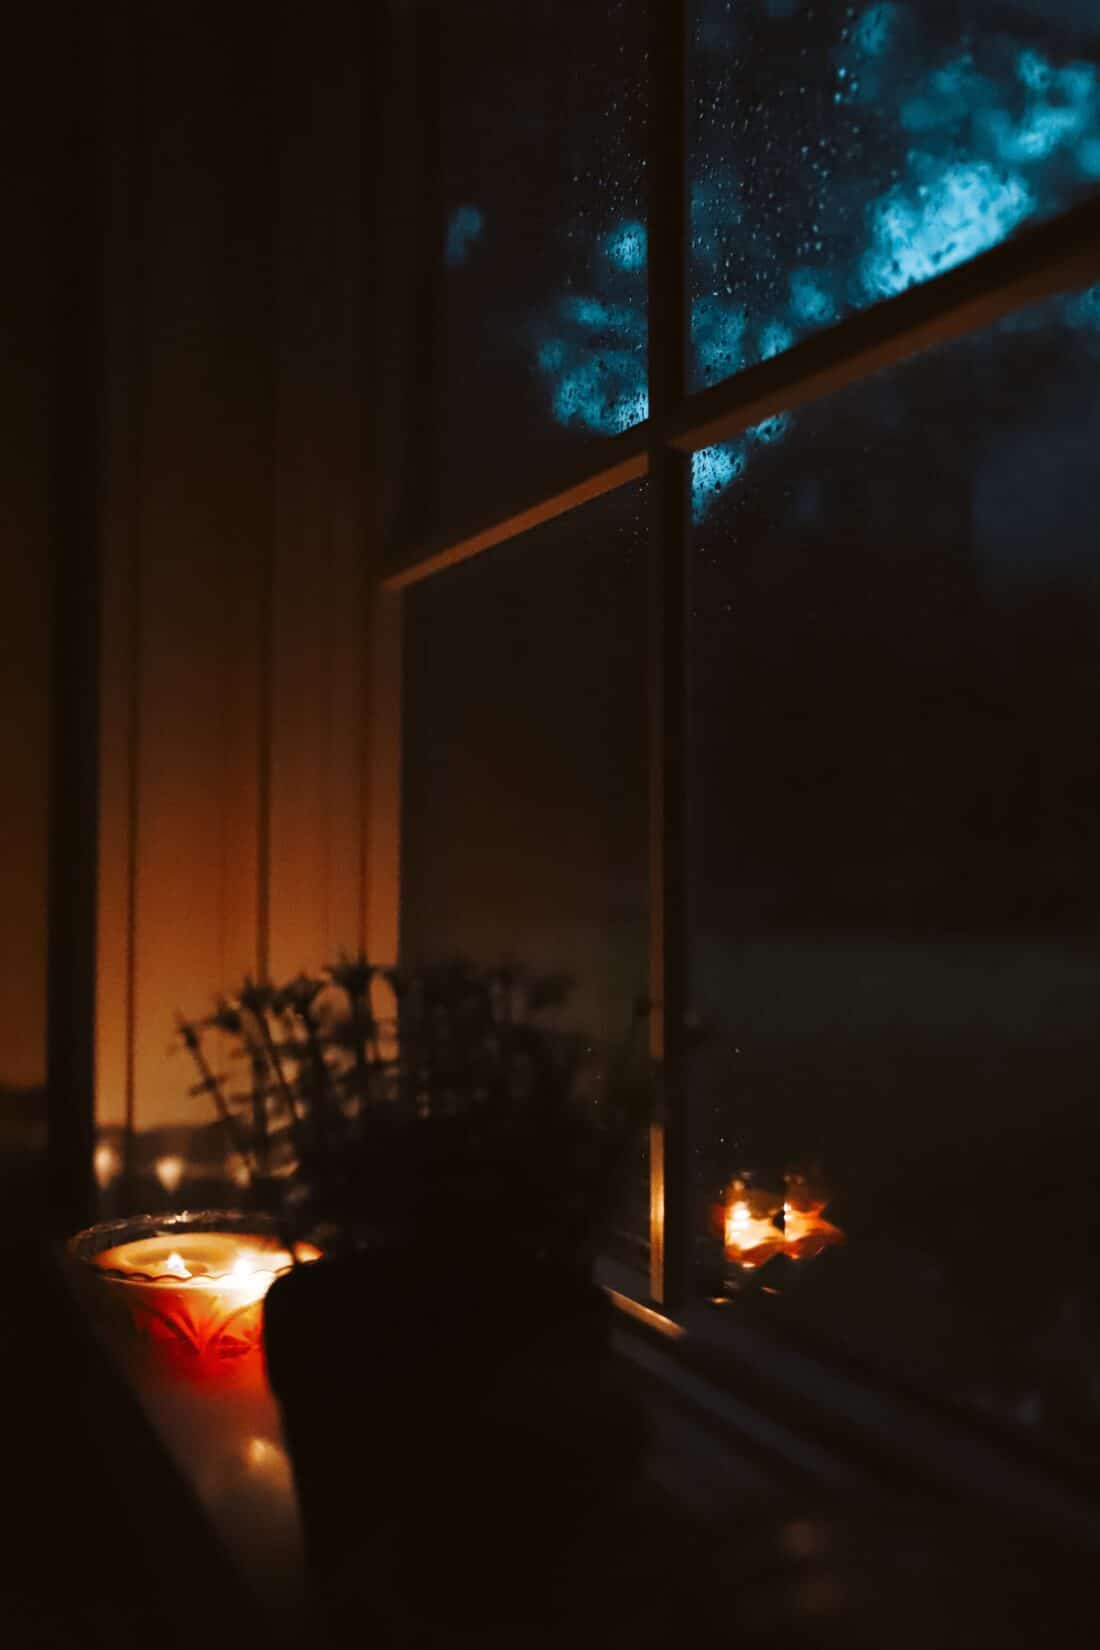 a stormy morning that is dark outside with a candle burning